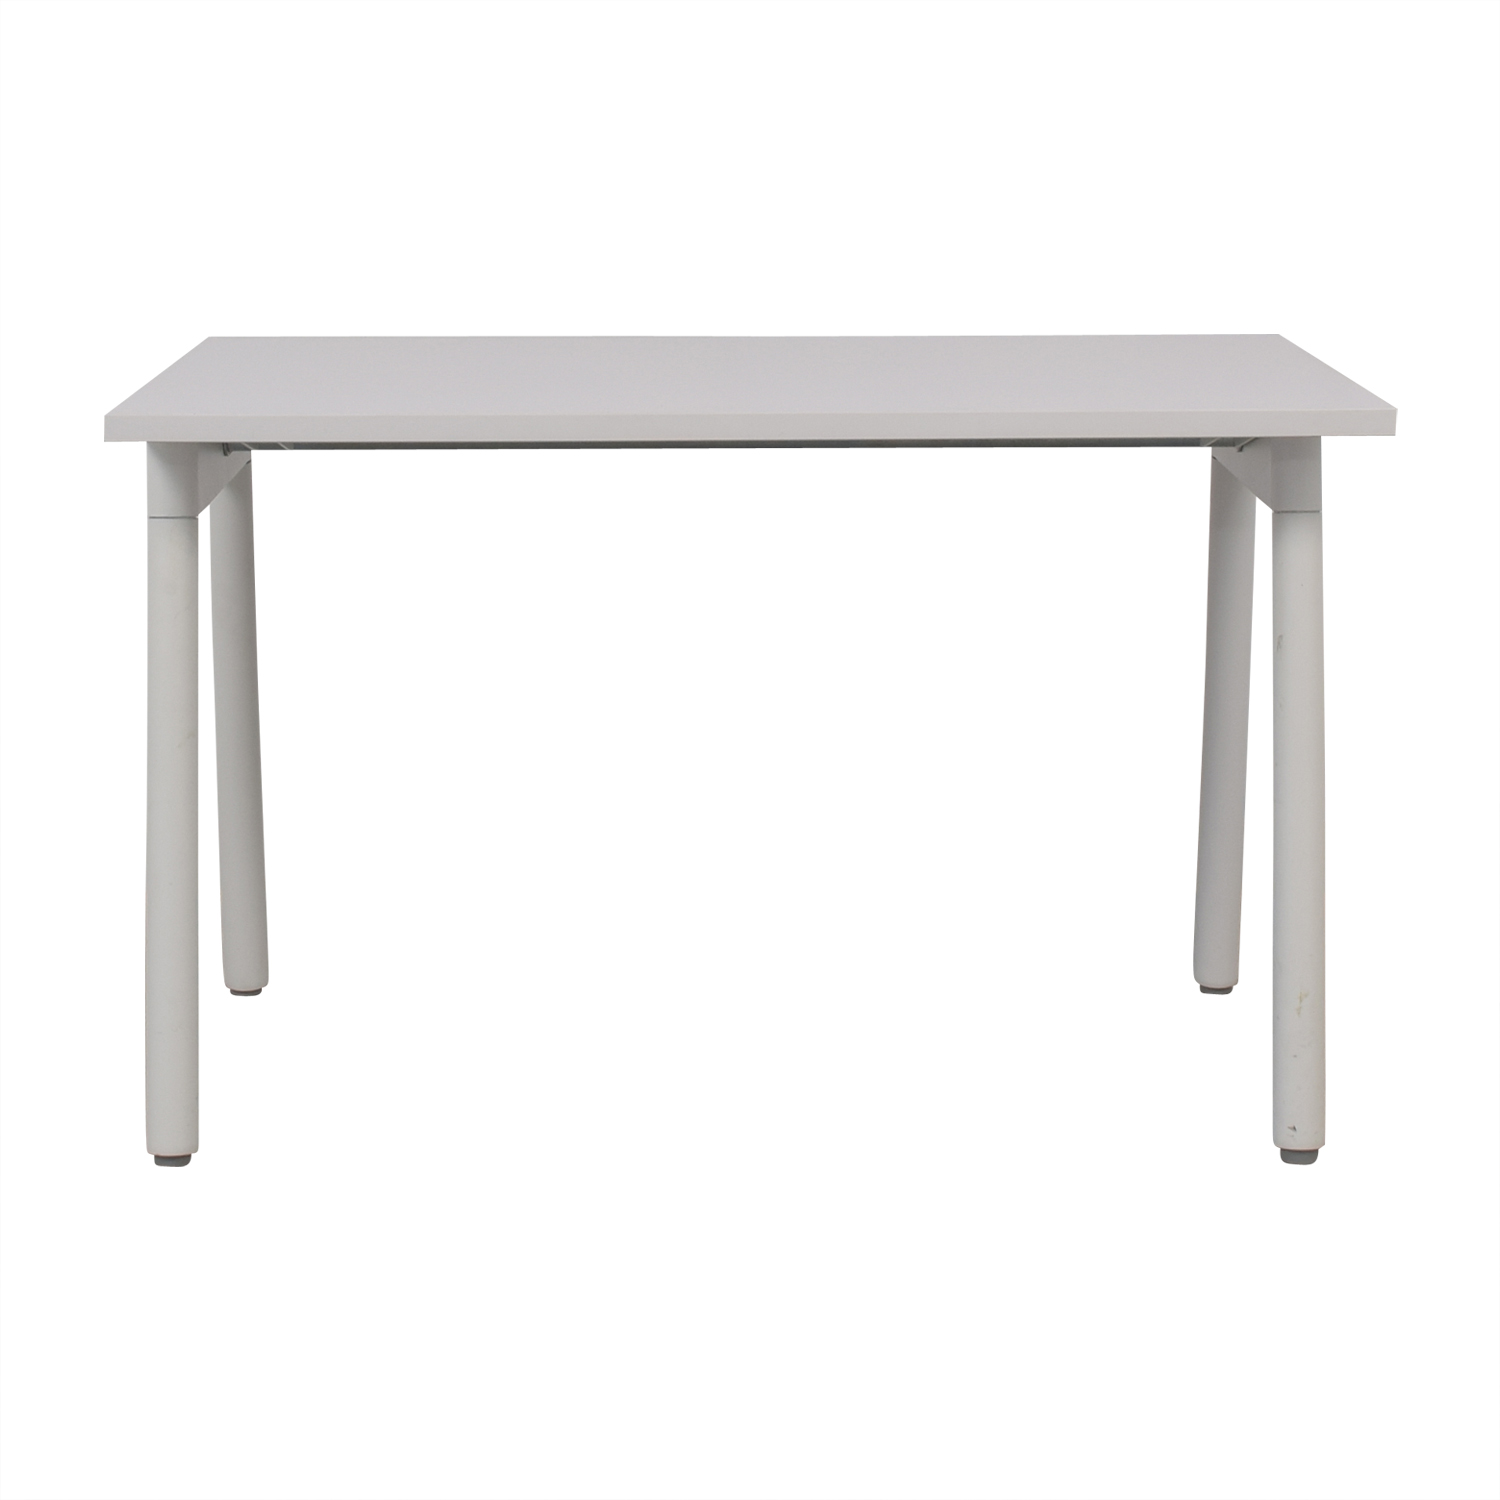 Poppin Poppin Series A Single Desk dimensions